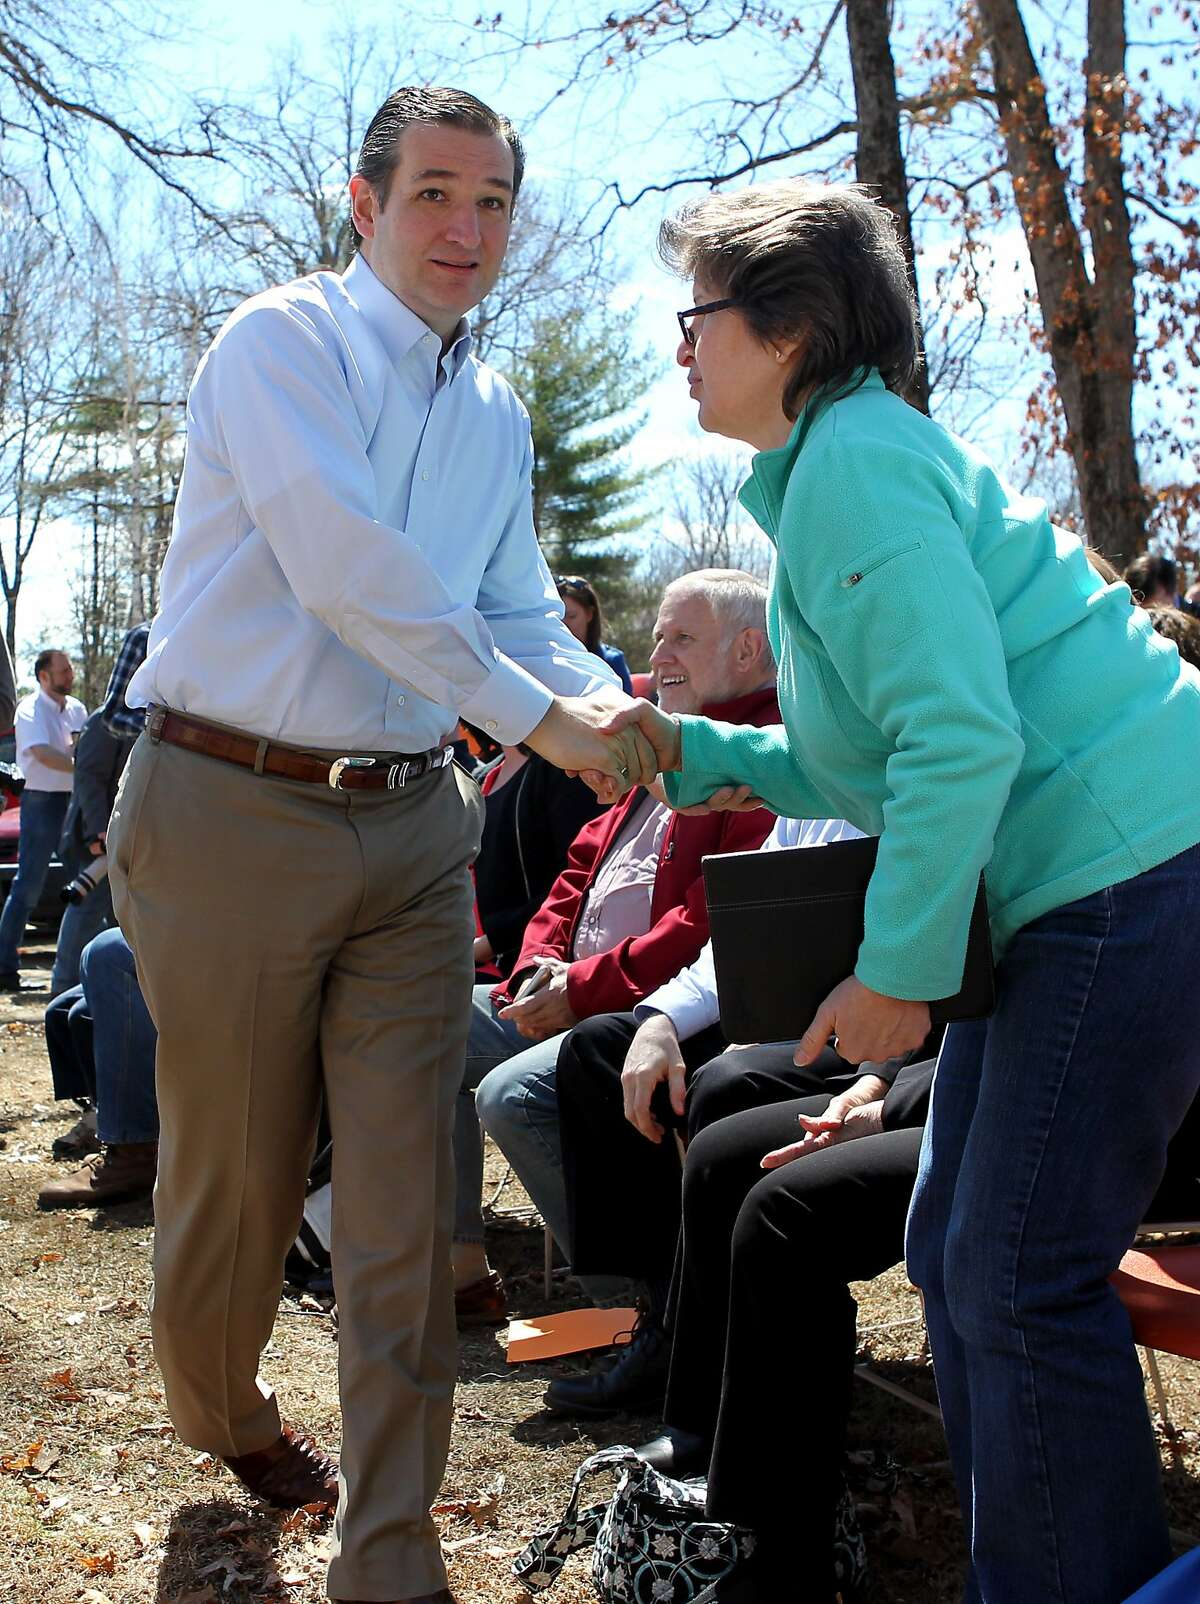 Republican presidential candidate Sen. Ted Cruz, R-Texas greets potential supporters at the Londonderry Fish and Game club in Litchfield, N.H., Sunday, April 19, 2015.